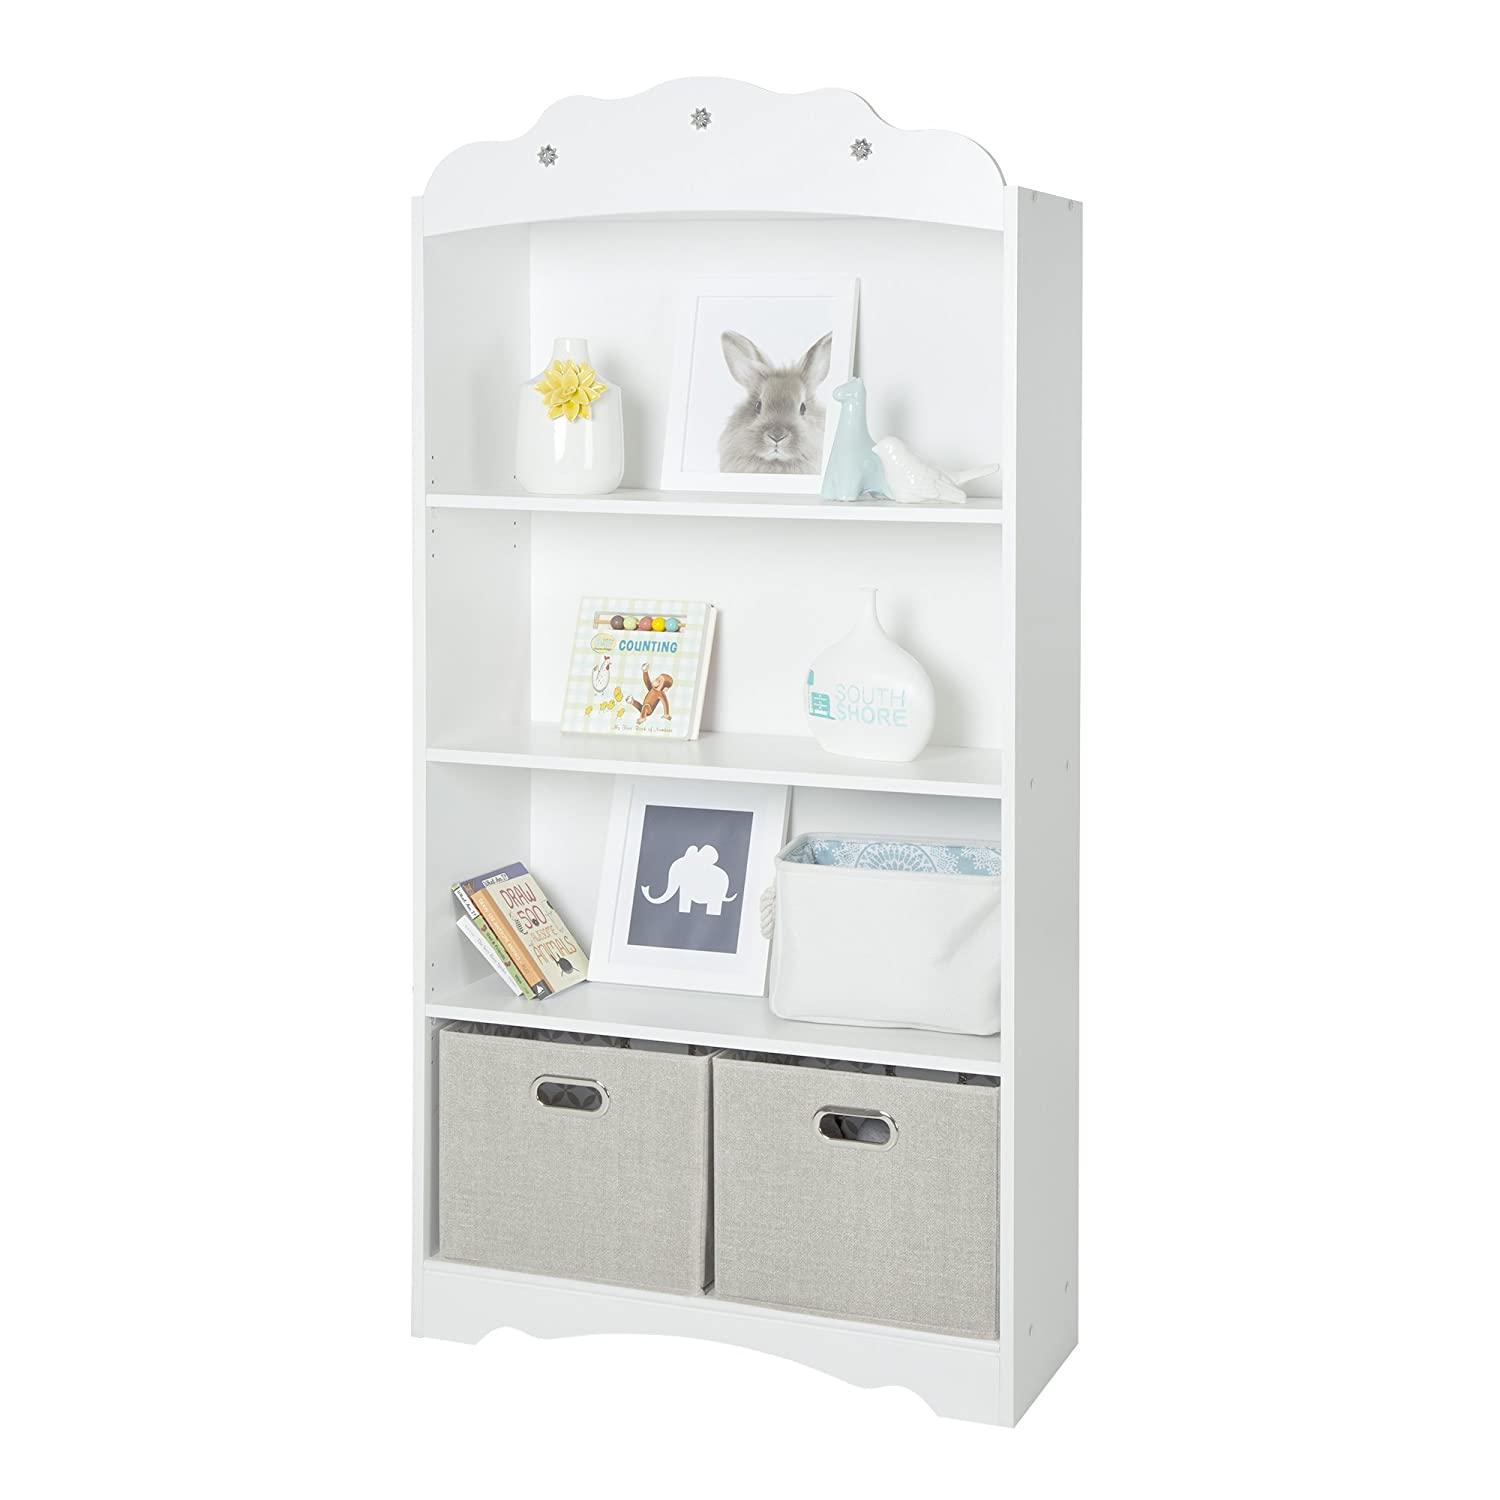 dresser ekm with country asp p doors white bookcase